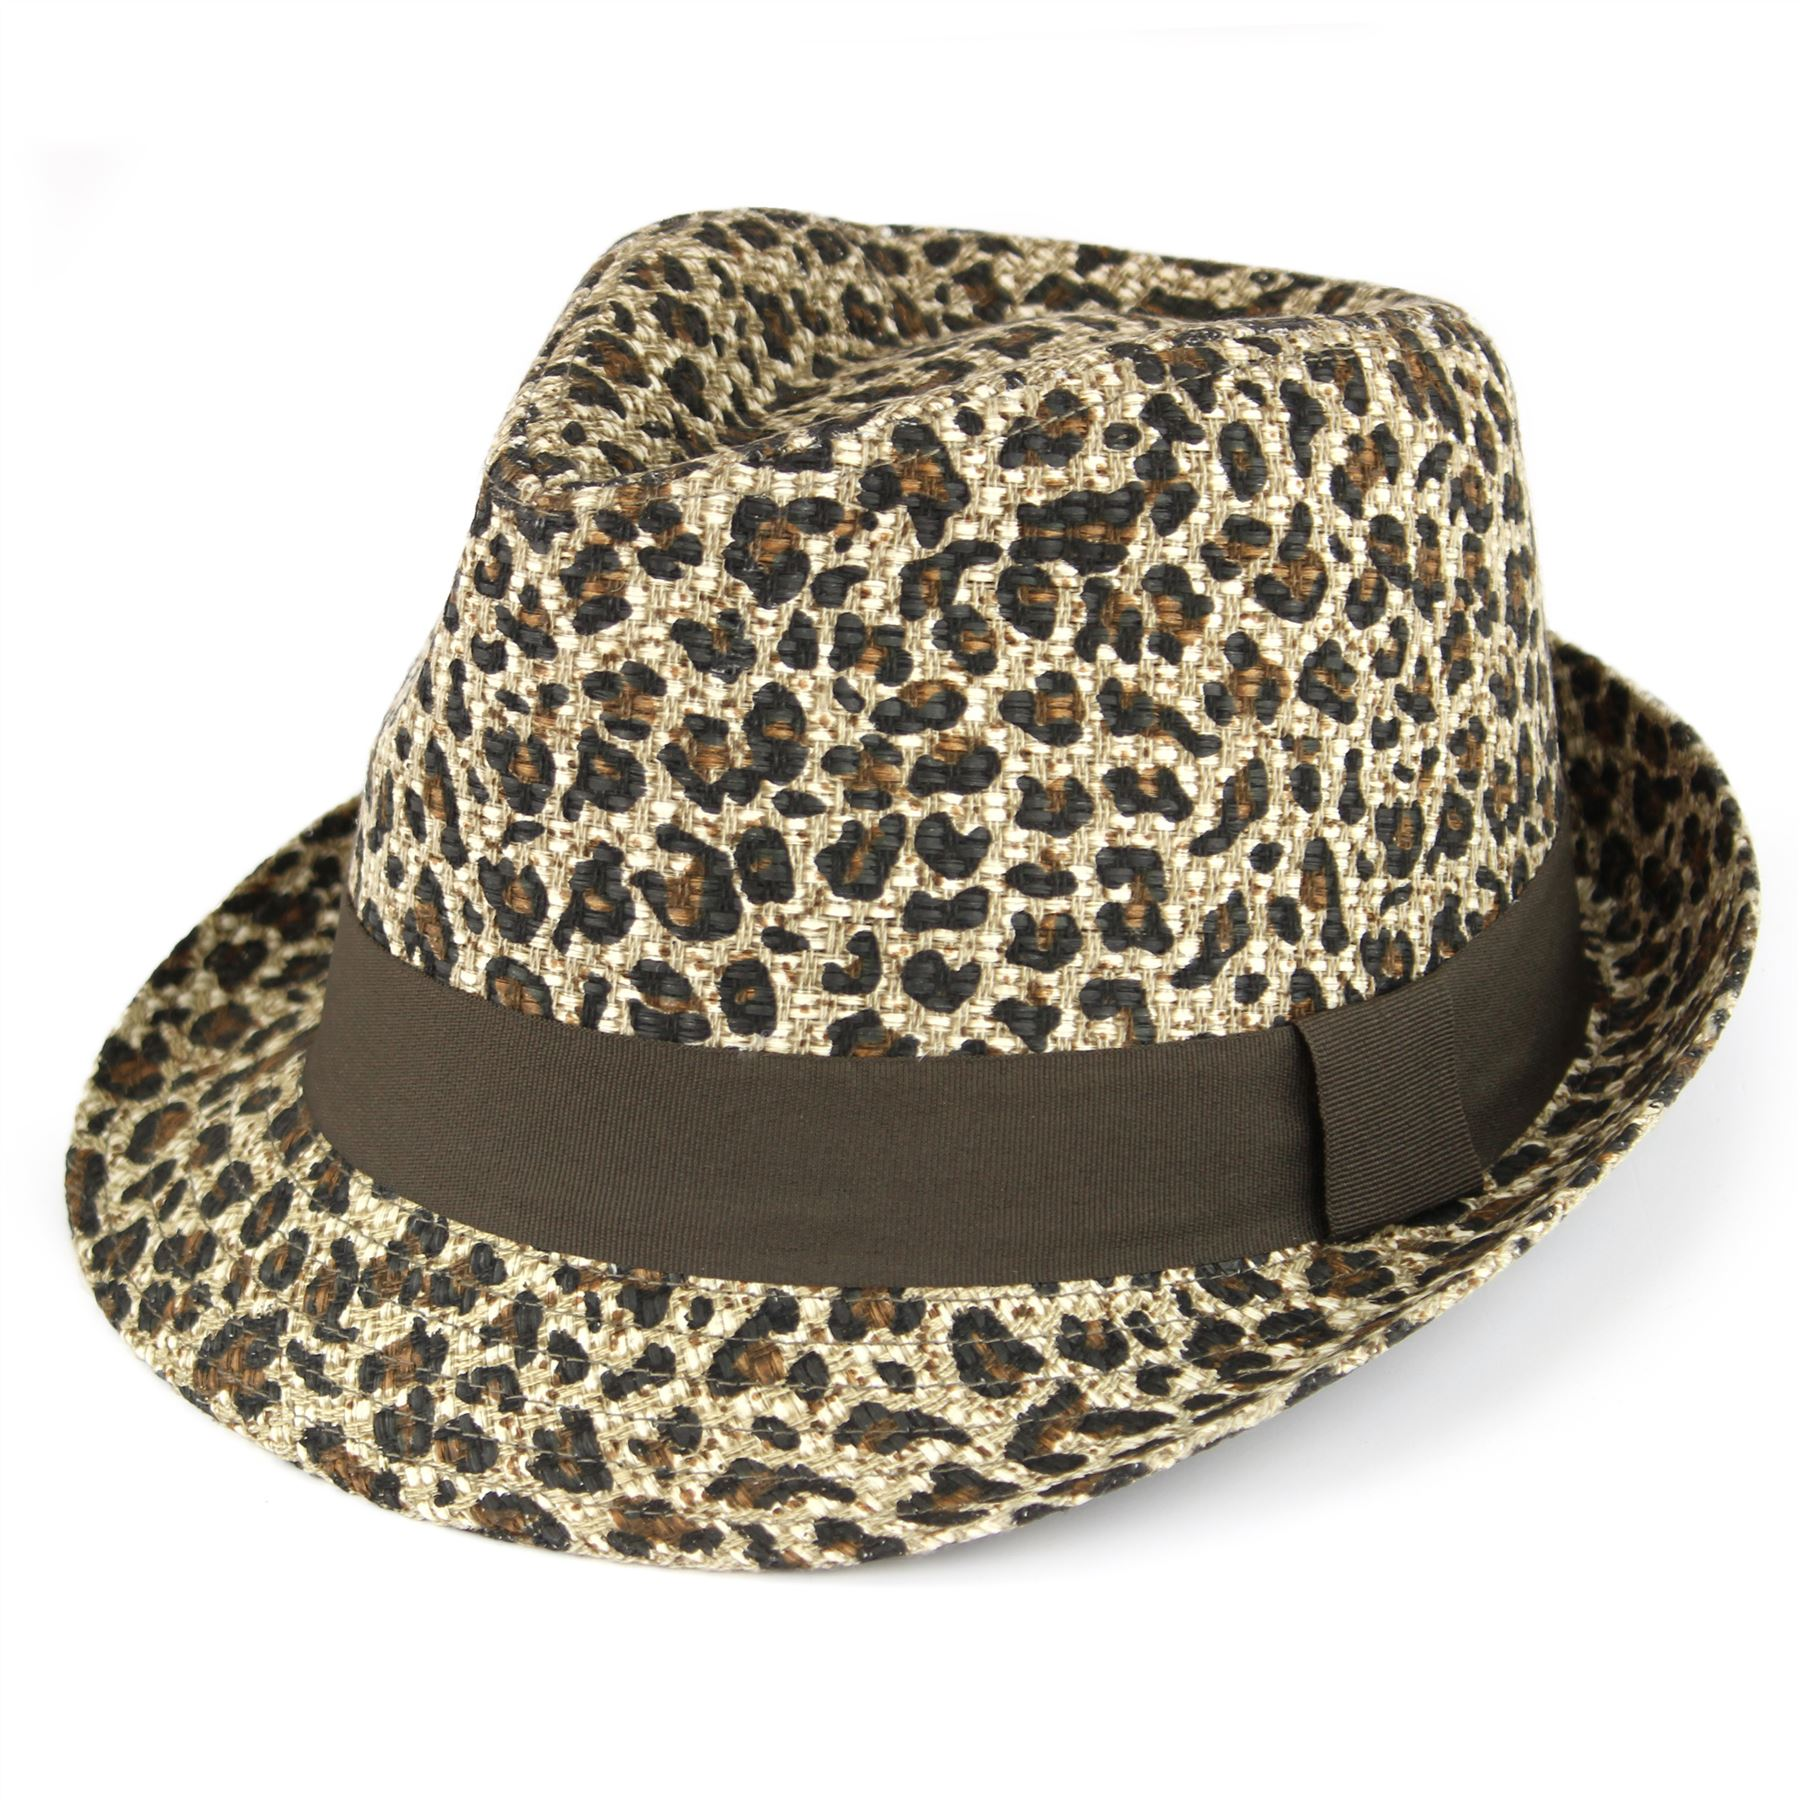 Details about Straw Trilby Hat Animal Leopard Print Woven Paper Hawkins  Summer Sun 7cc1900773d